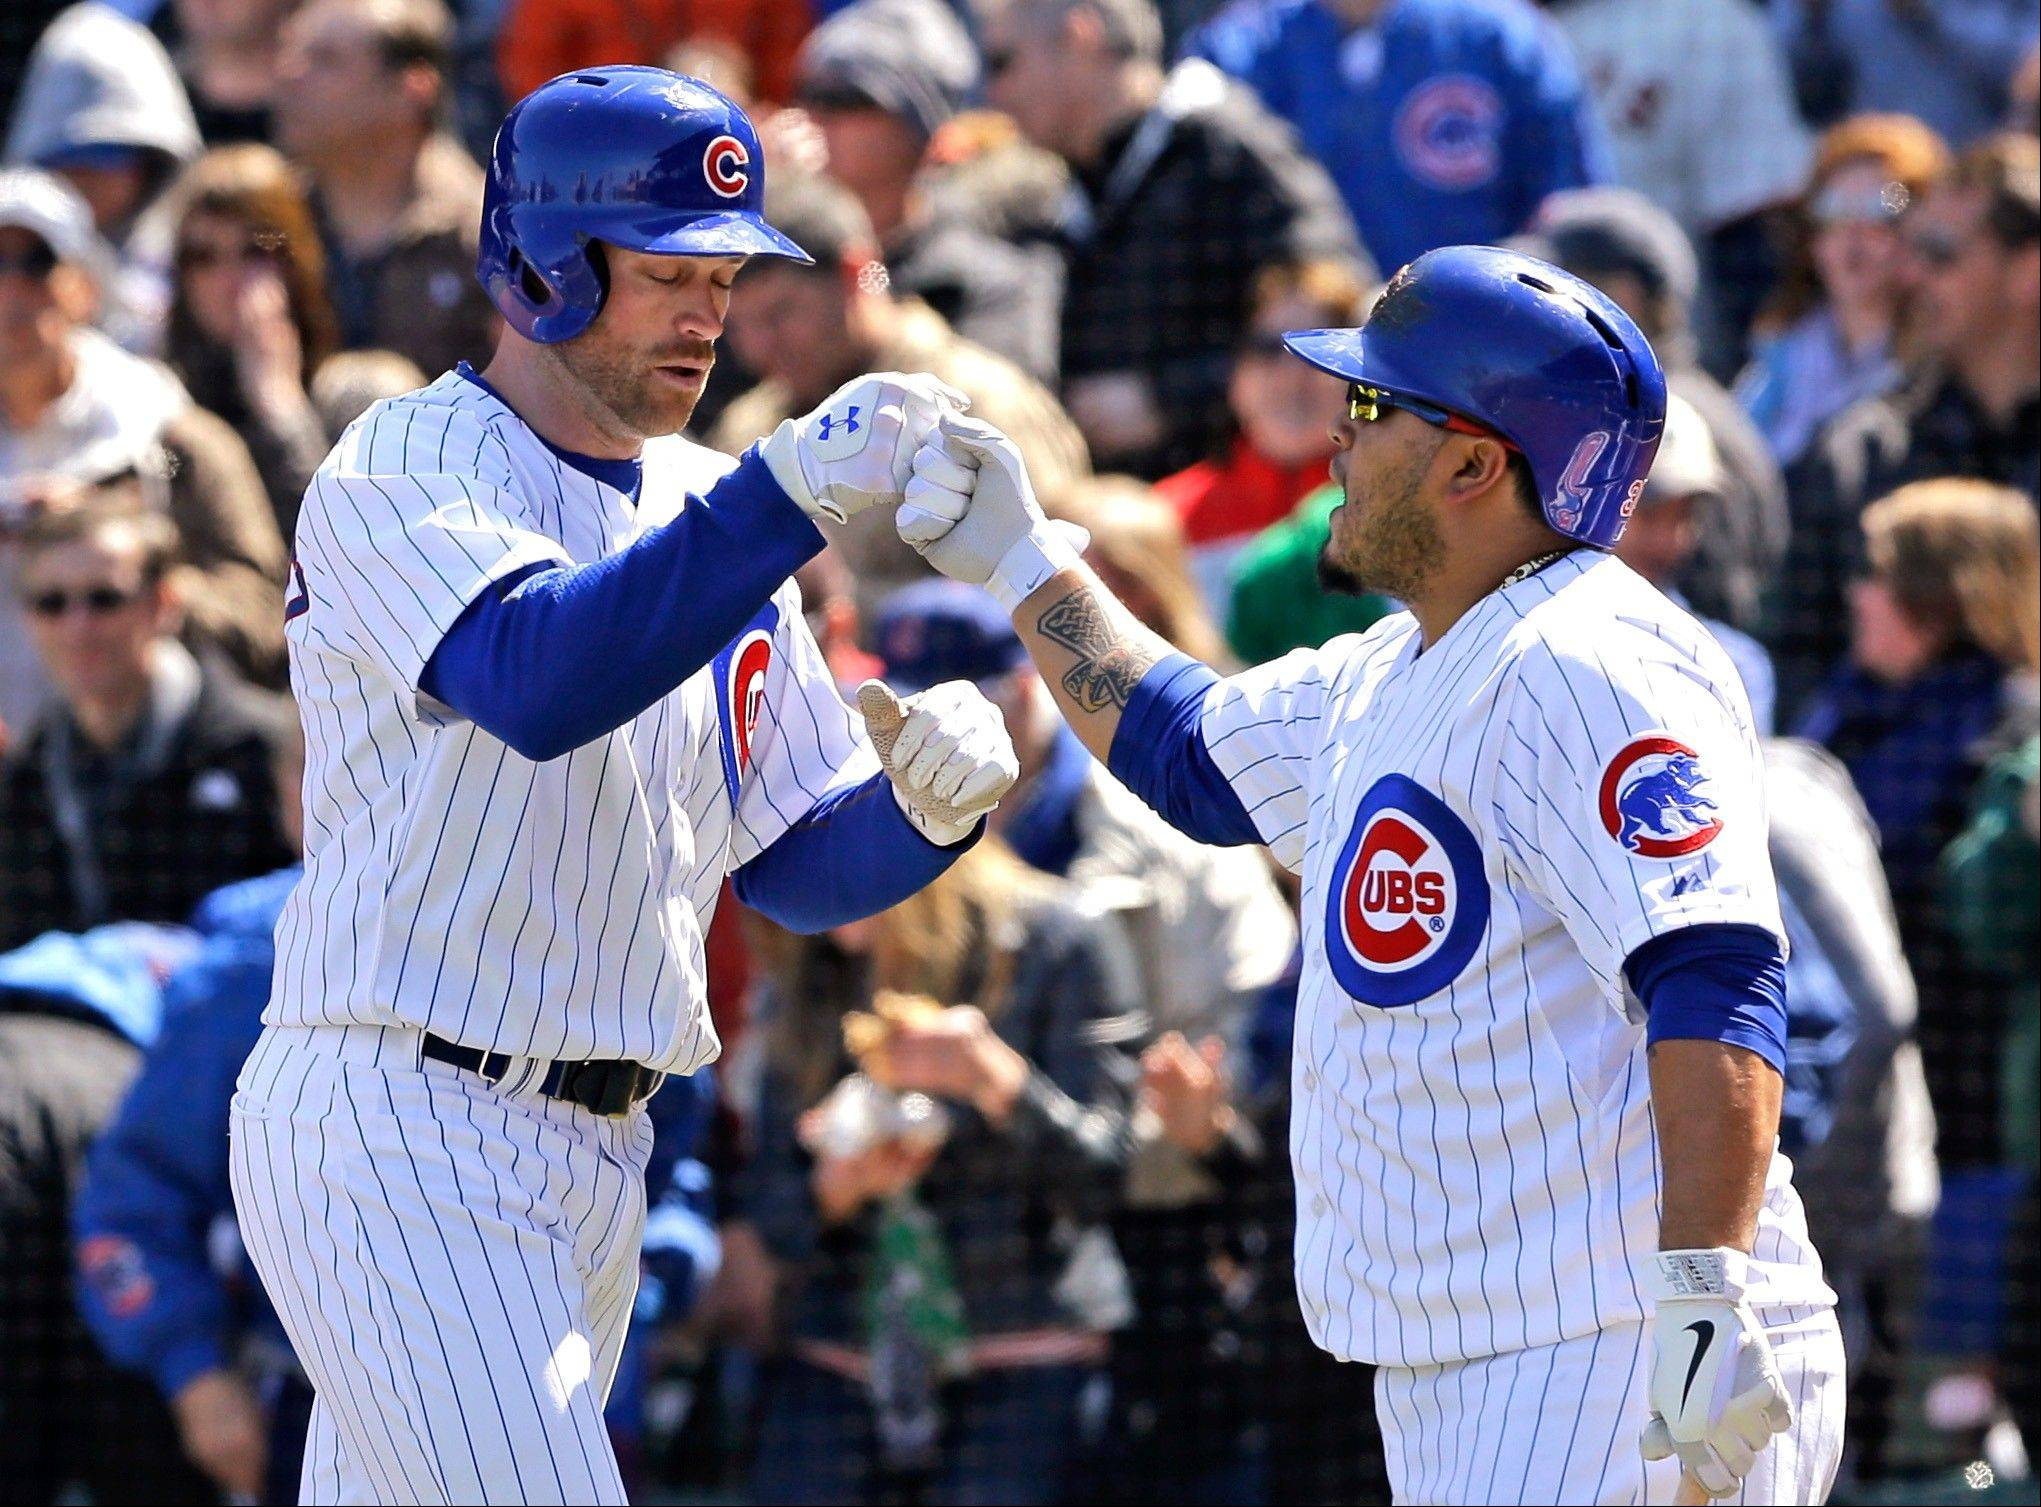 The Cubs� Nate Schierholtz, left, celebrates with Dioner Navarro after hitting a two-run home run during Sunday�s first inning at Wrigley Field.